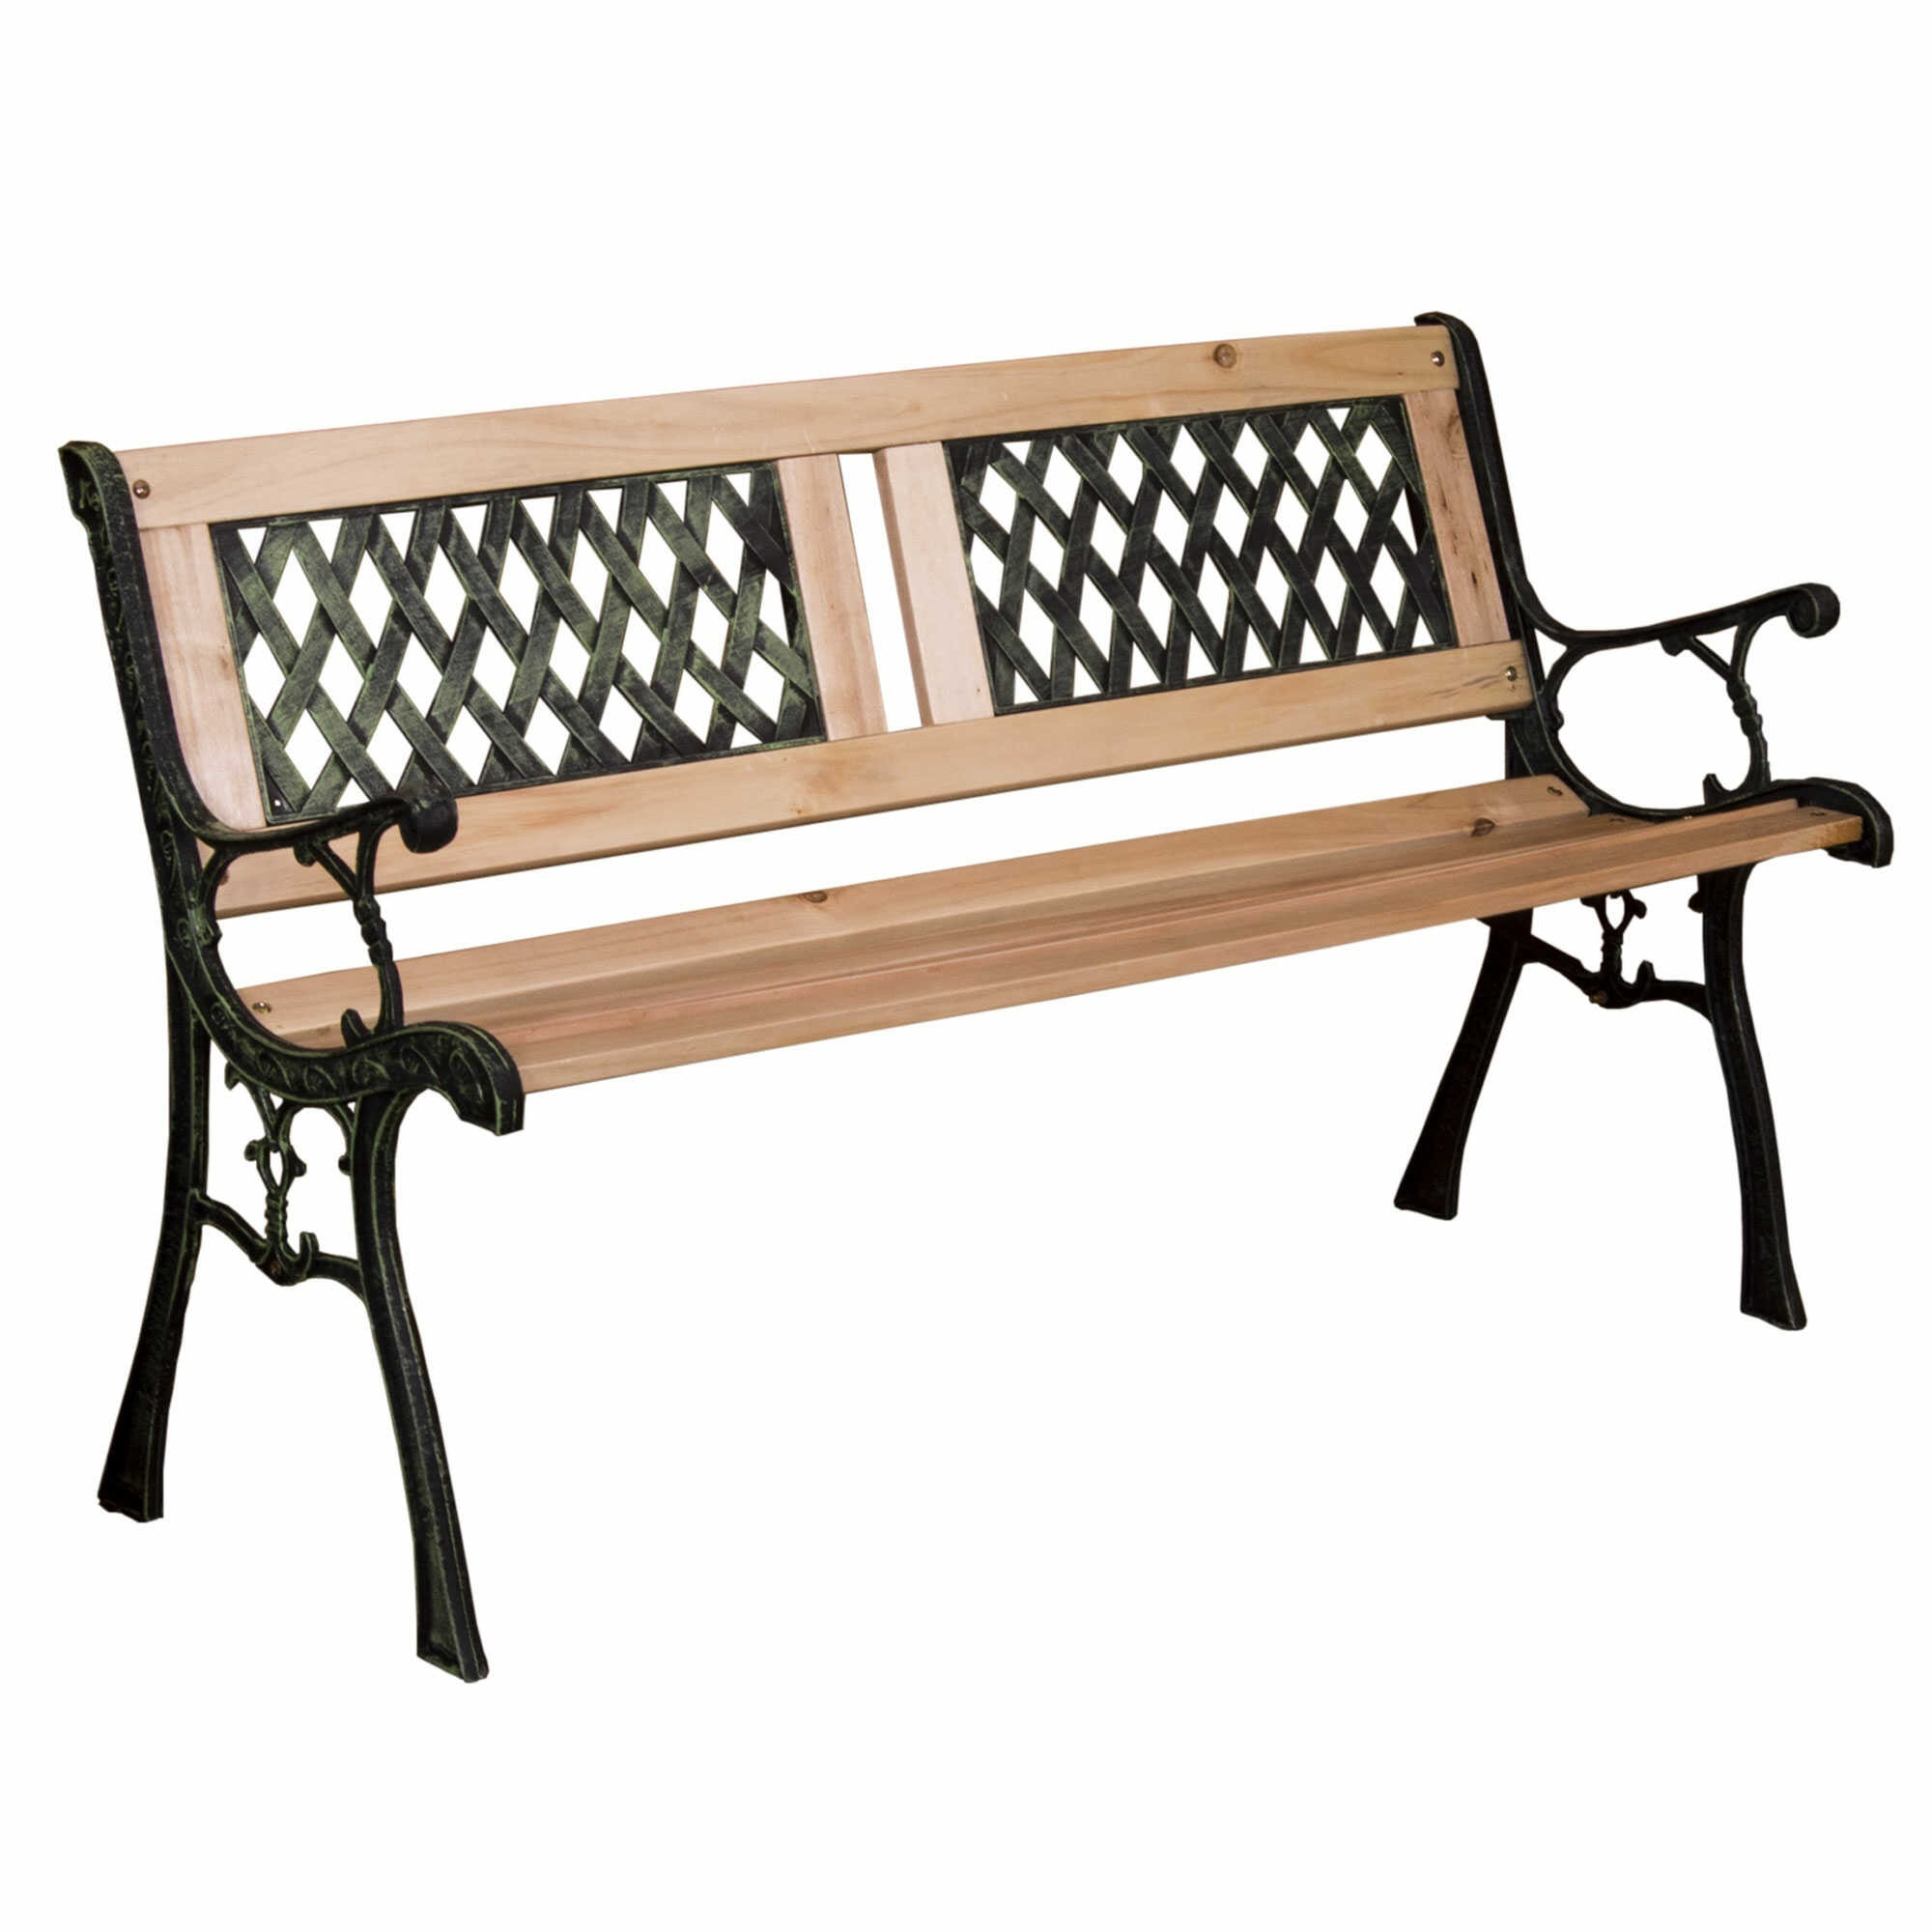 Groovy Garden Bench Twin Cross Style Ncnpc Chair Design For Home Ncnpcorg